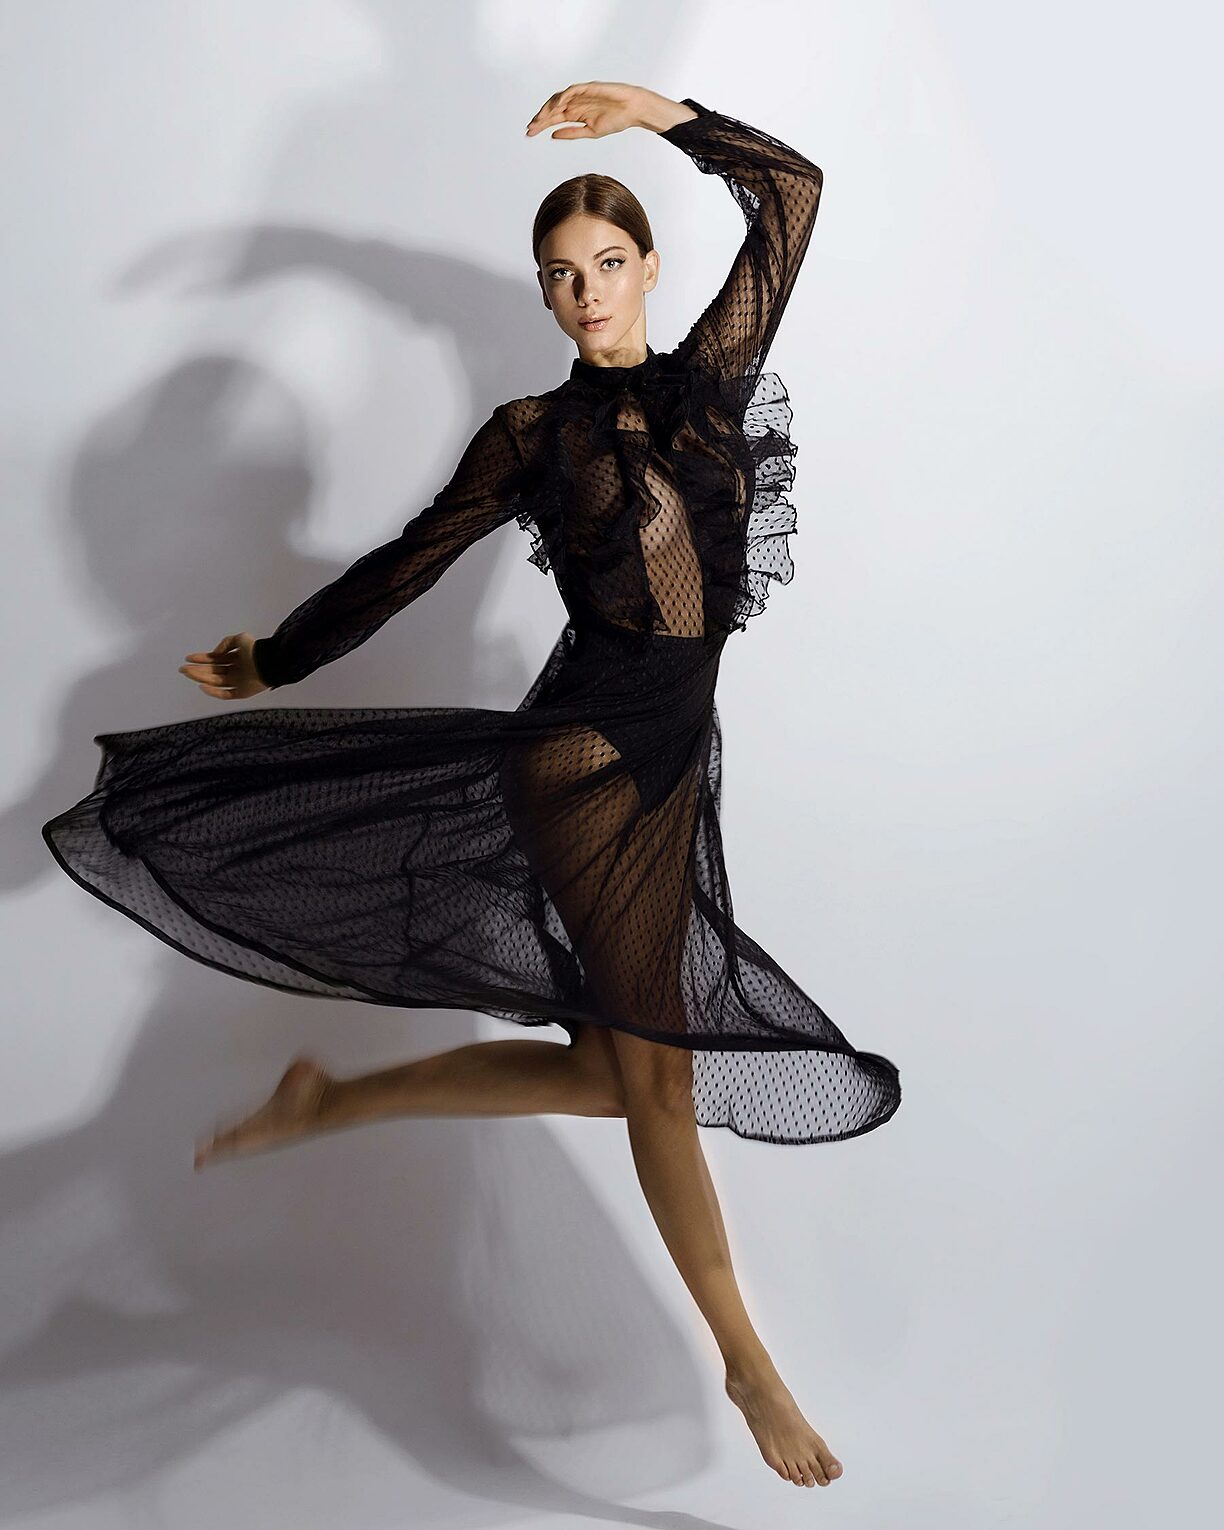 A brown hair model who jumps in a transparent black dress like a ballerina